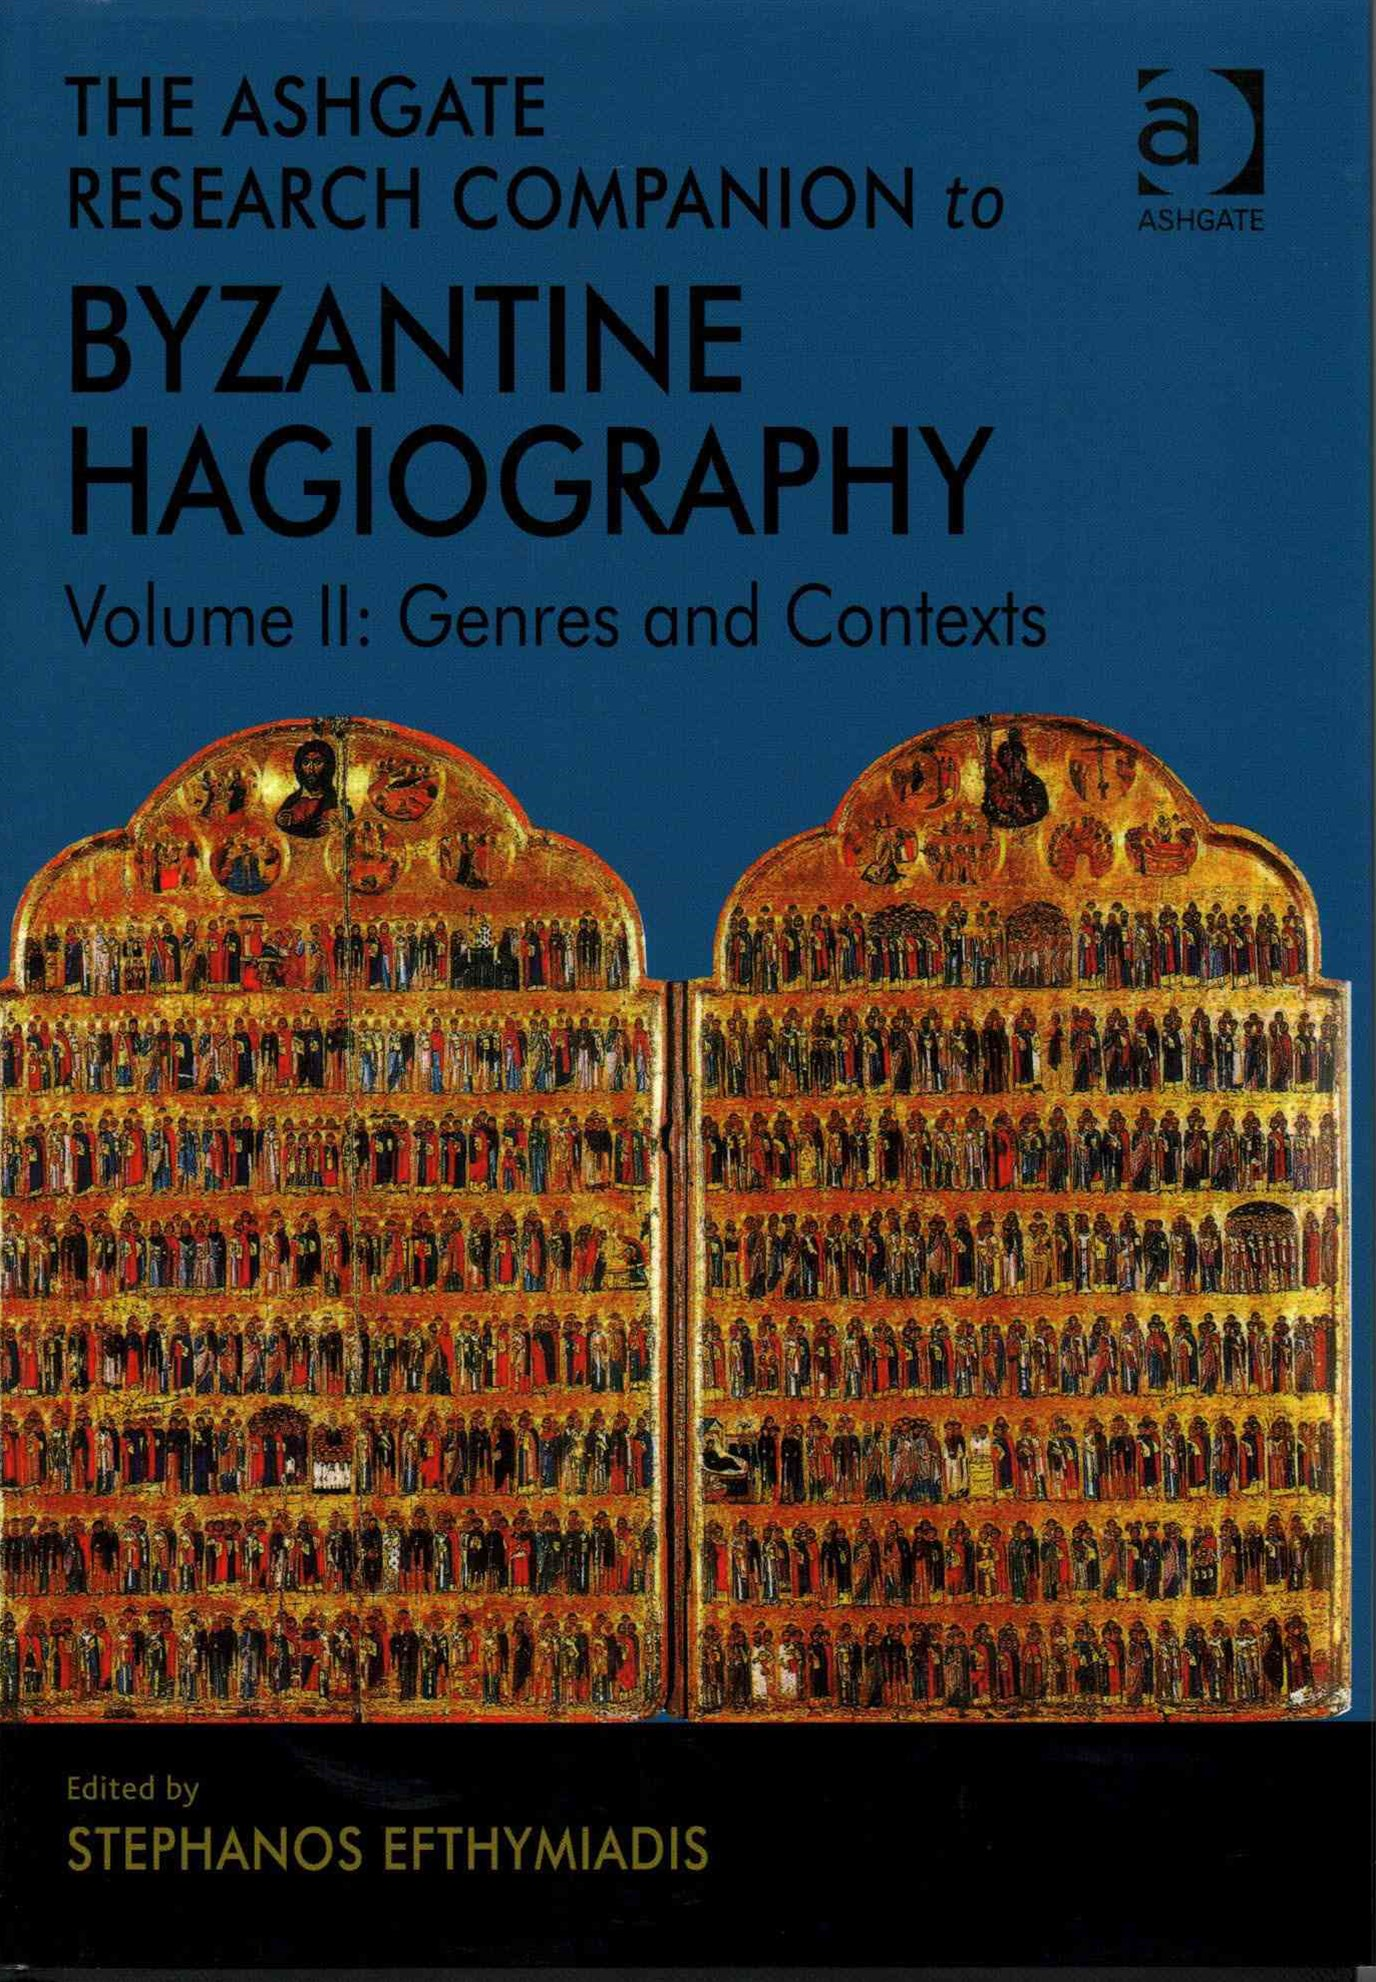 The Ashgate Research Companion to Byzantine Hagiography: Genres and Contexts